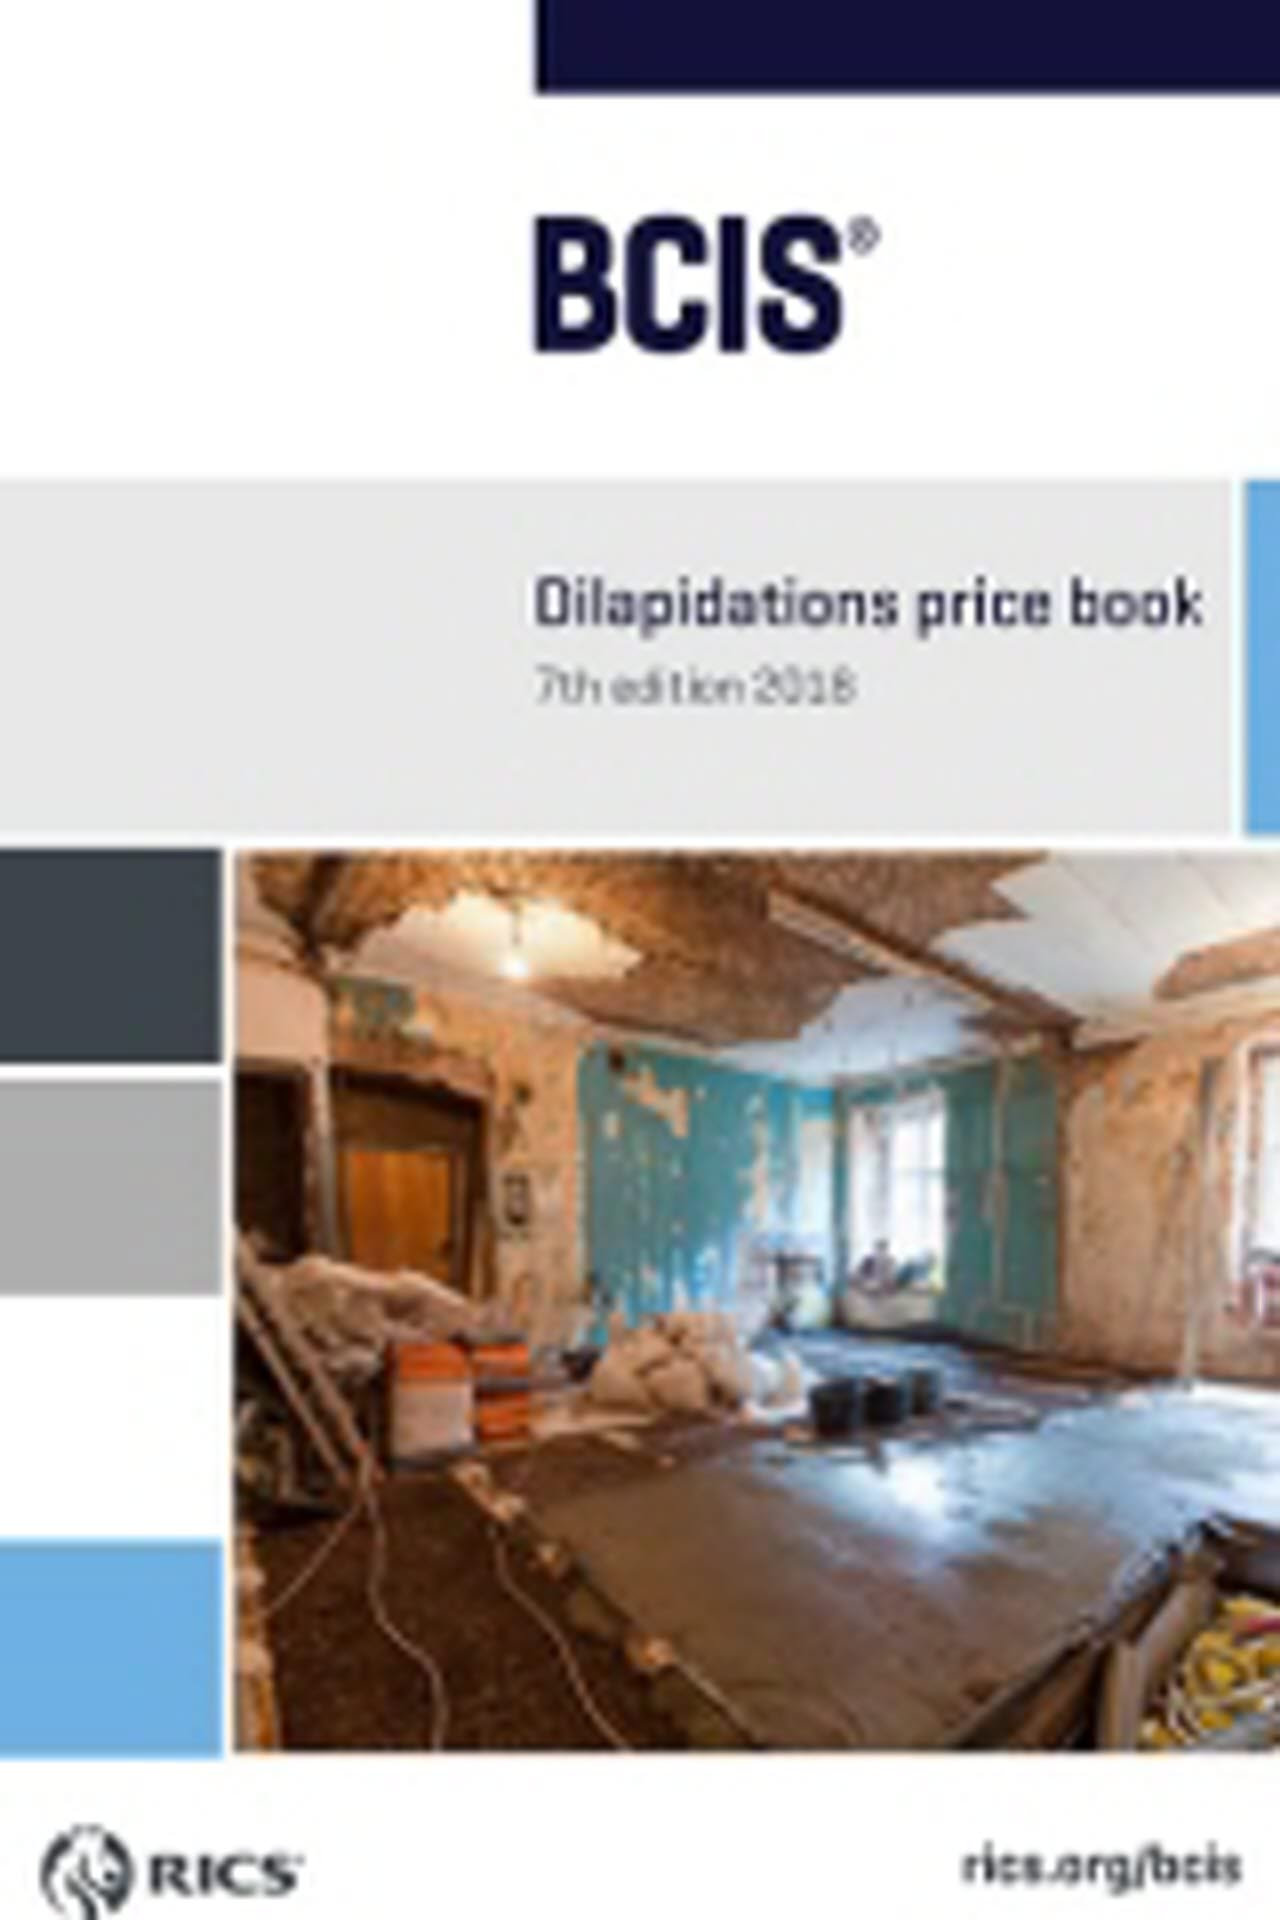 BCIS Dilapidations Price Book